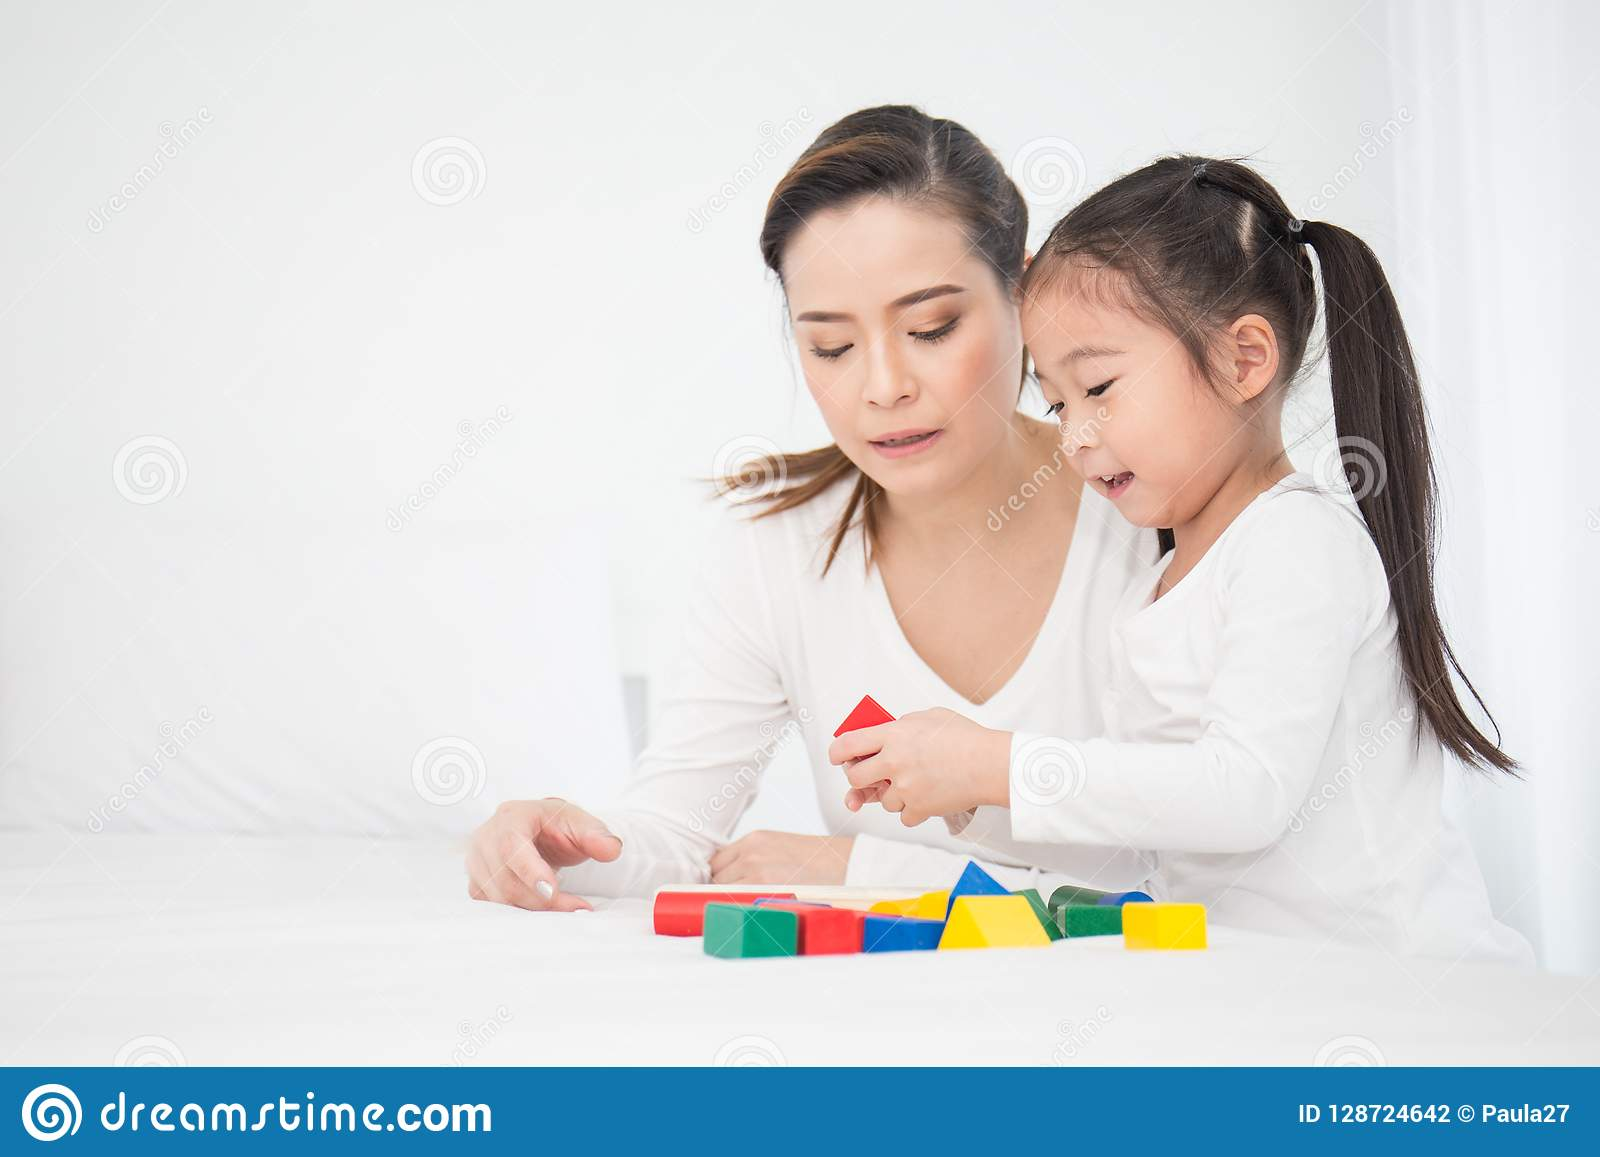 Portrait of asian little cute girl playing colorful blocks with her mother over white background.